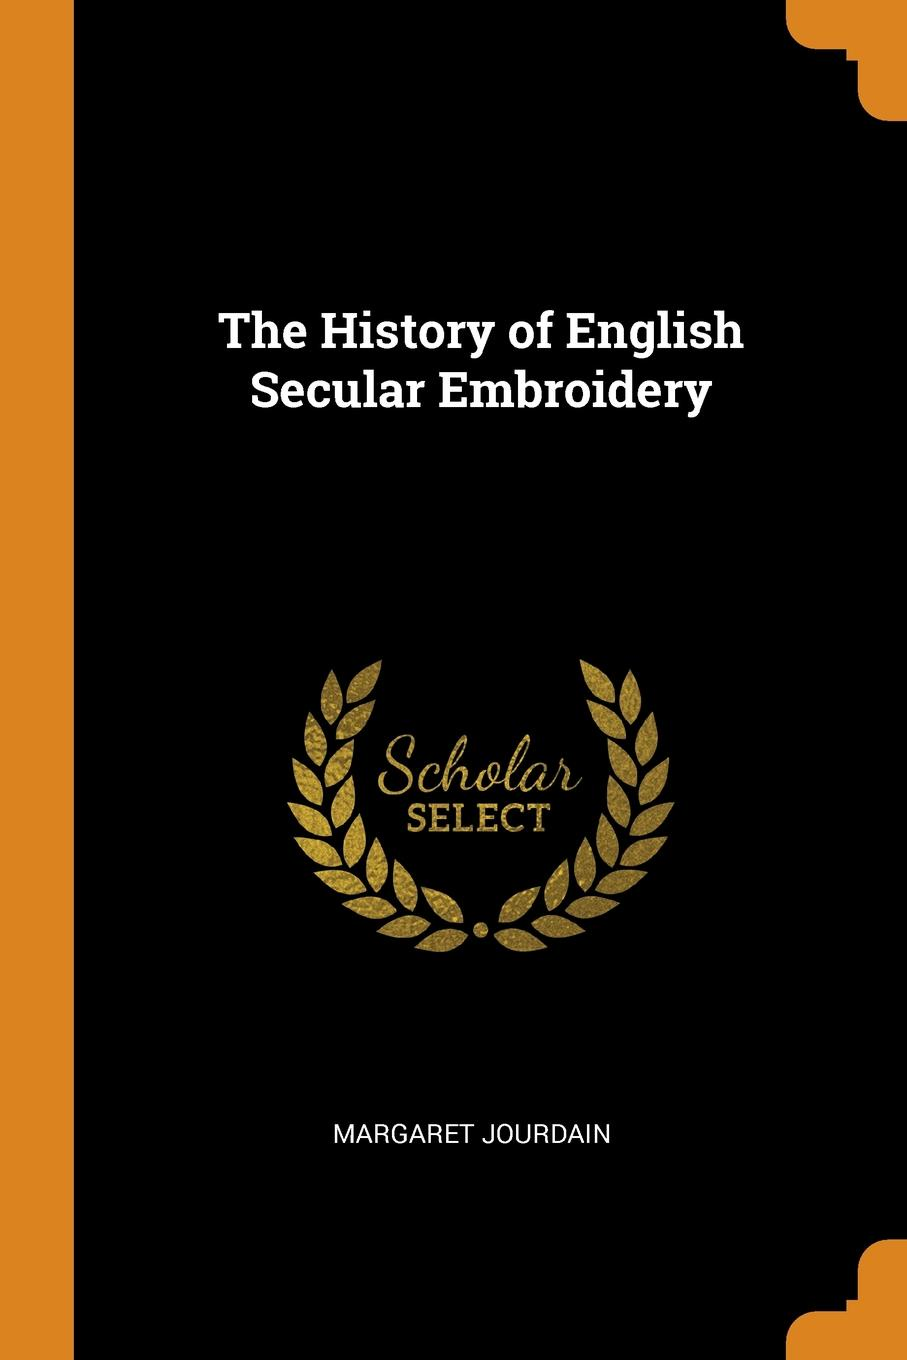 Margaret Jourdain. The History of English Secular Embroidery